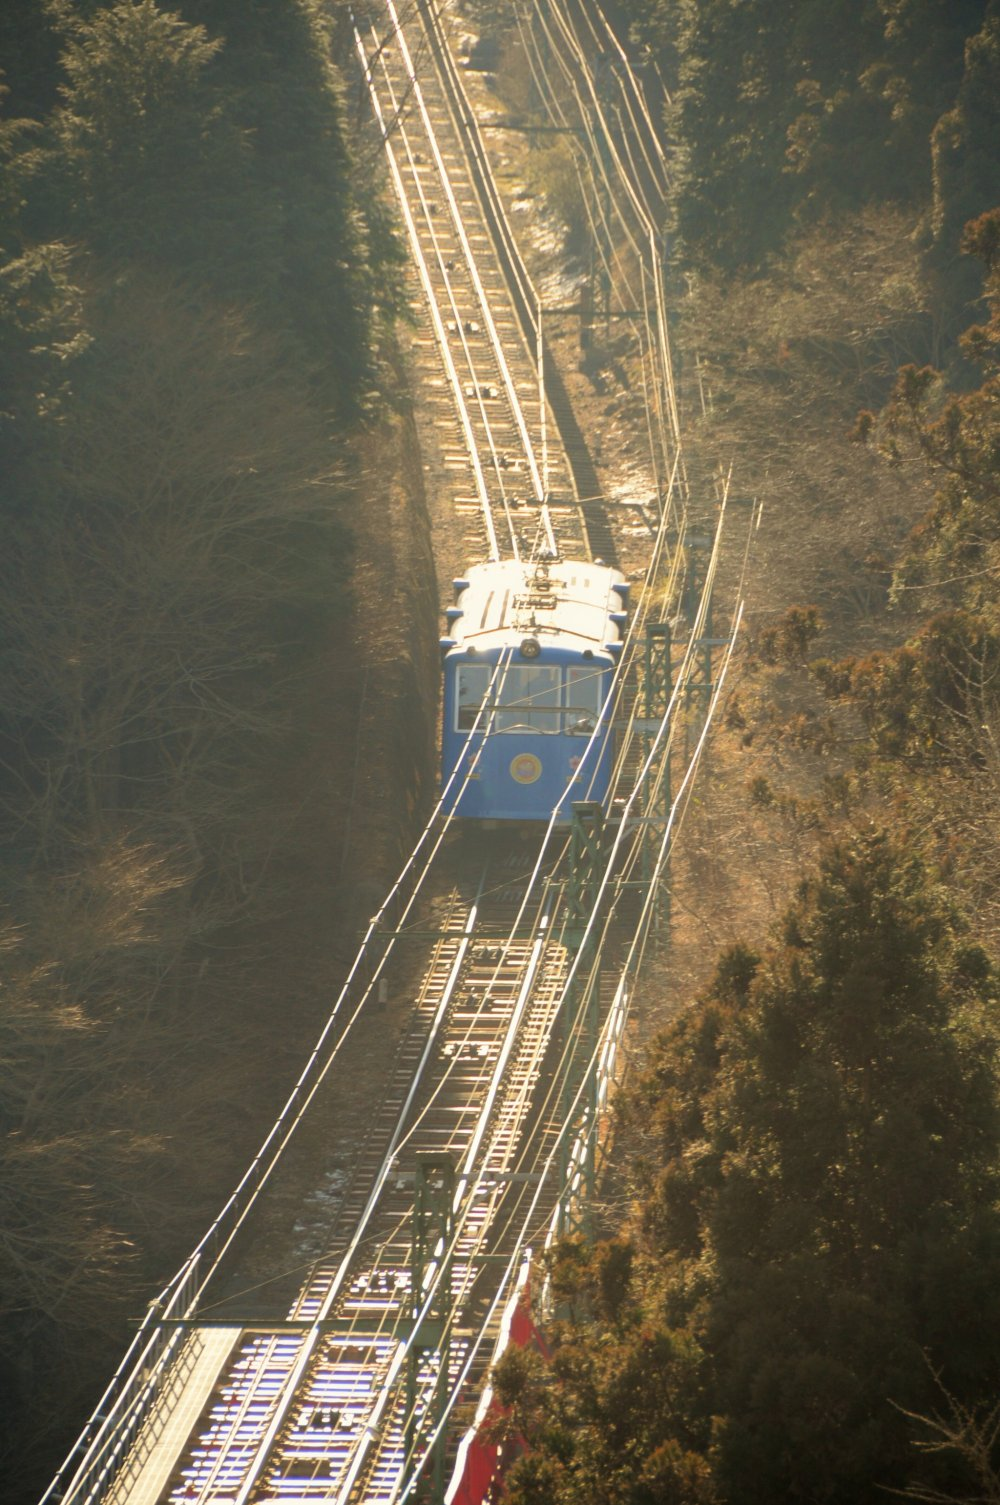 The cable car, which travels from Takimoto to Mitake Village, has been operating since 1927.